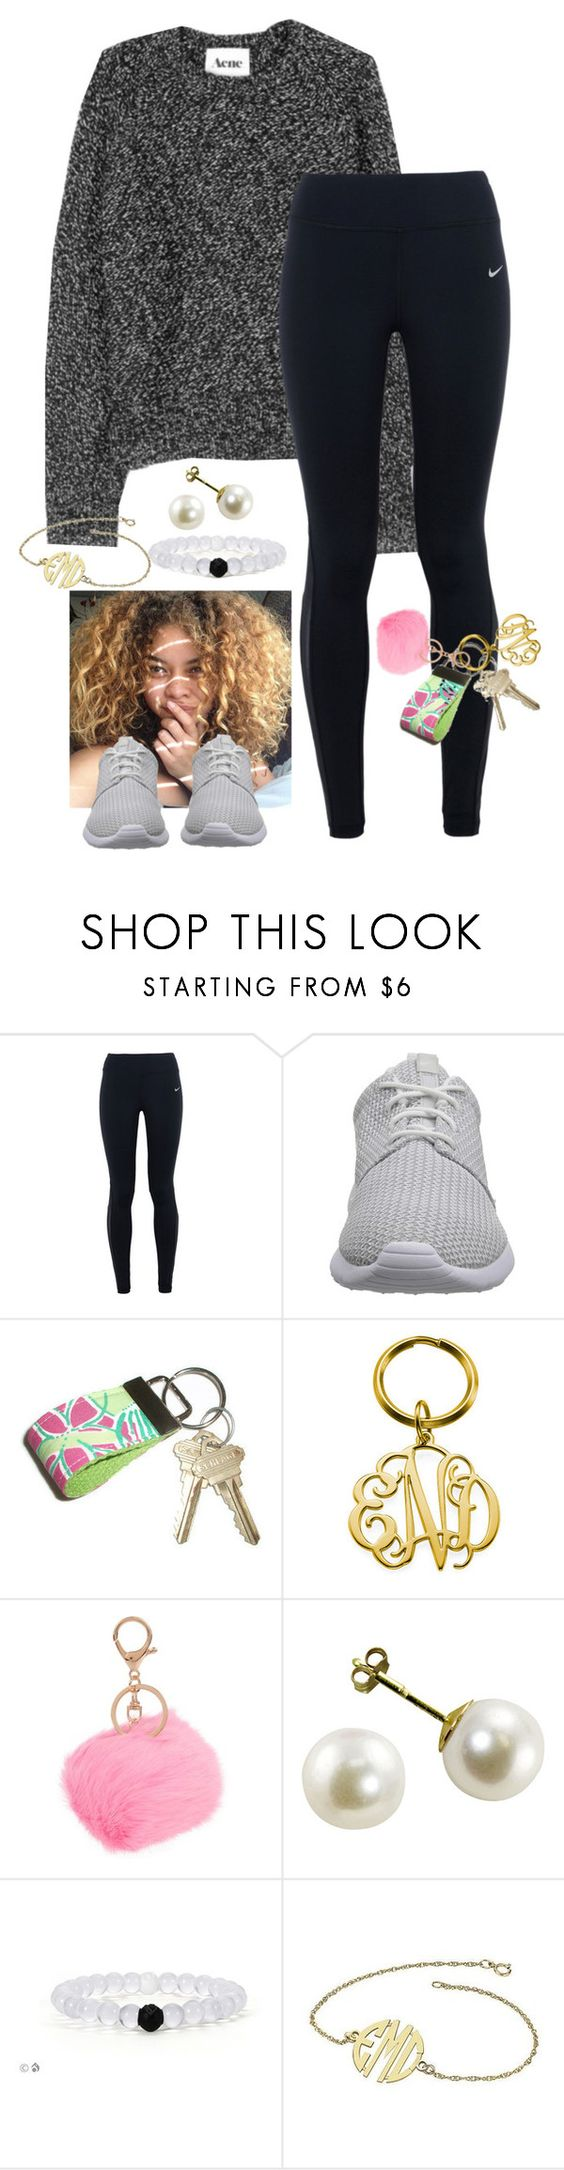 """Out and About"" by daydreammmm ❤ liked on Polyvore featuring NIKE, Lilly Pulitzer, women's clothing, women's fashion, women, female, woman, misses and juniors"